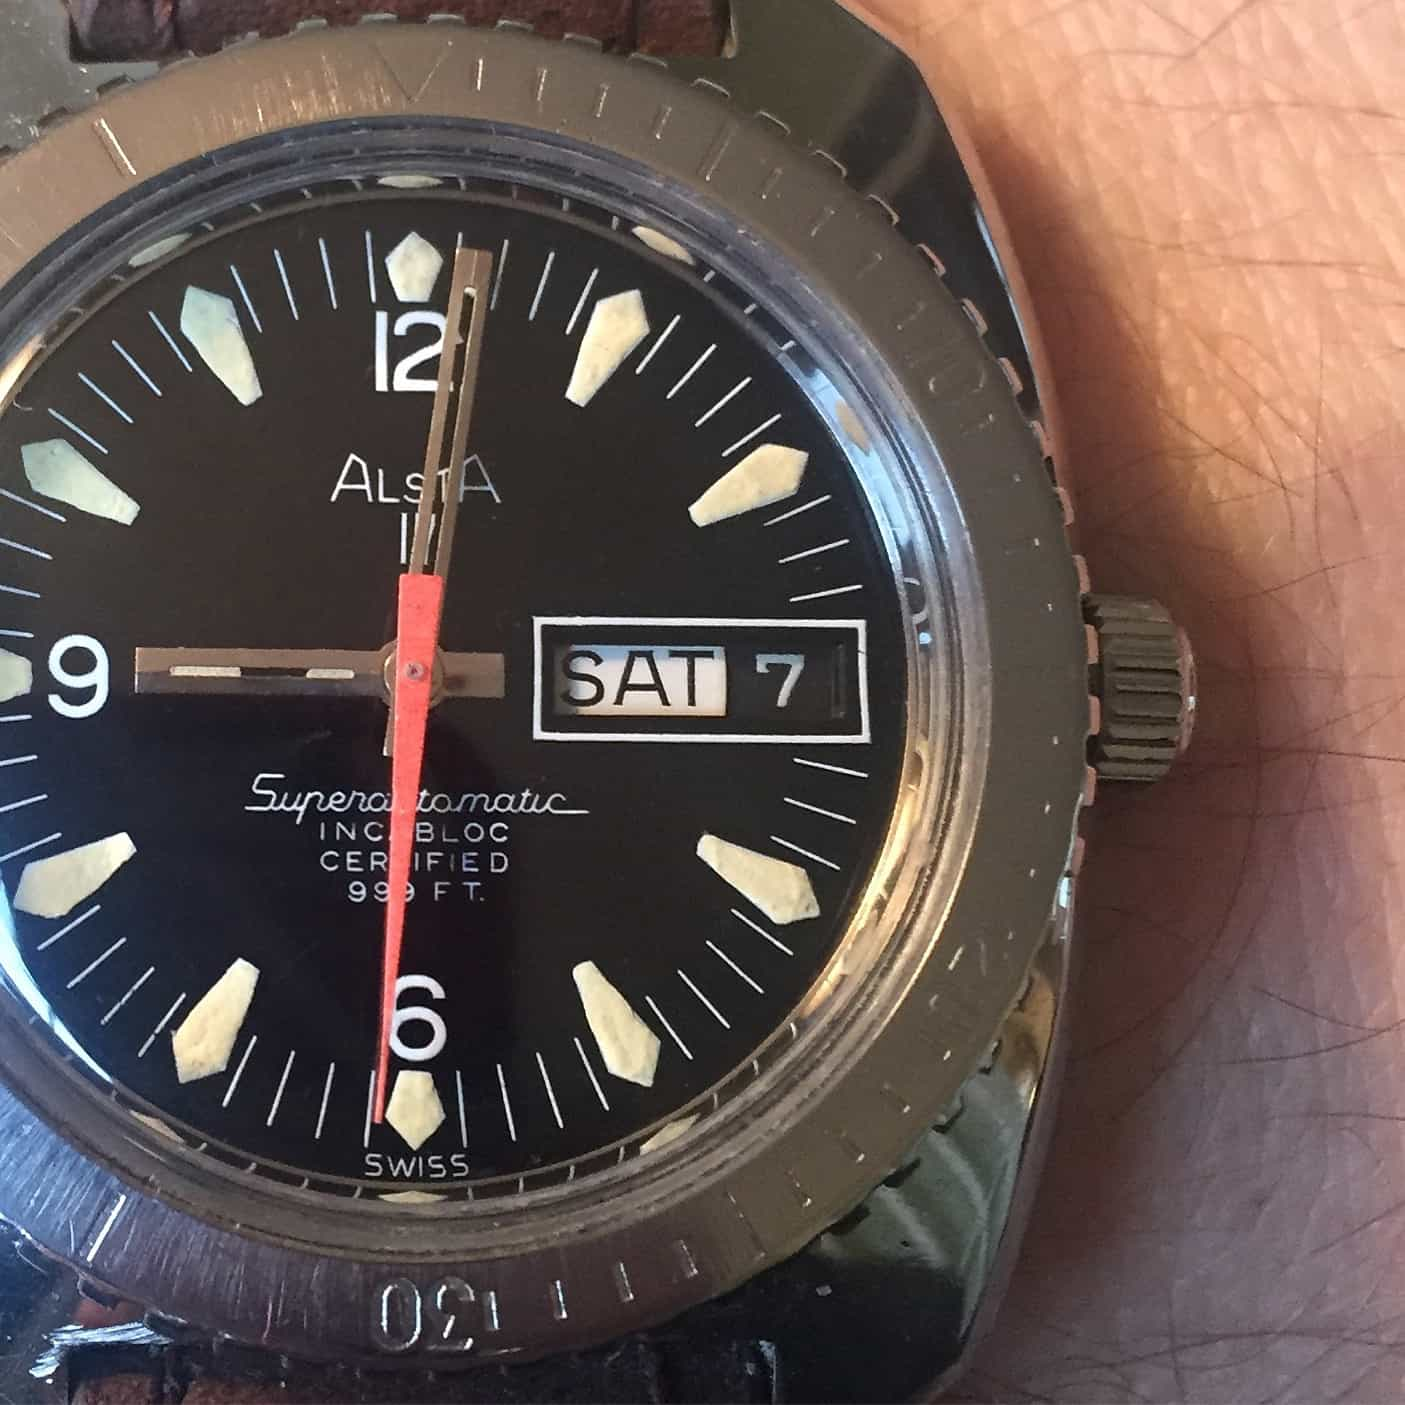 "Affordable Vintage: Deep Dive with the Alsta Nautoscaph ""Jaws"" Diver"